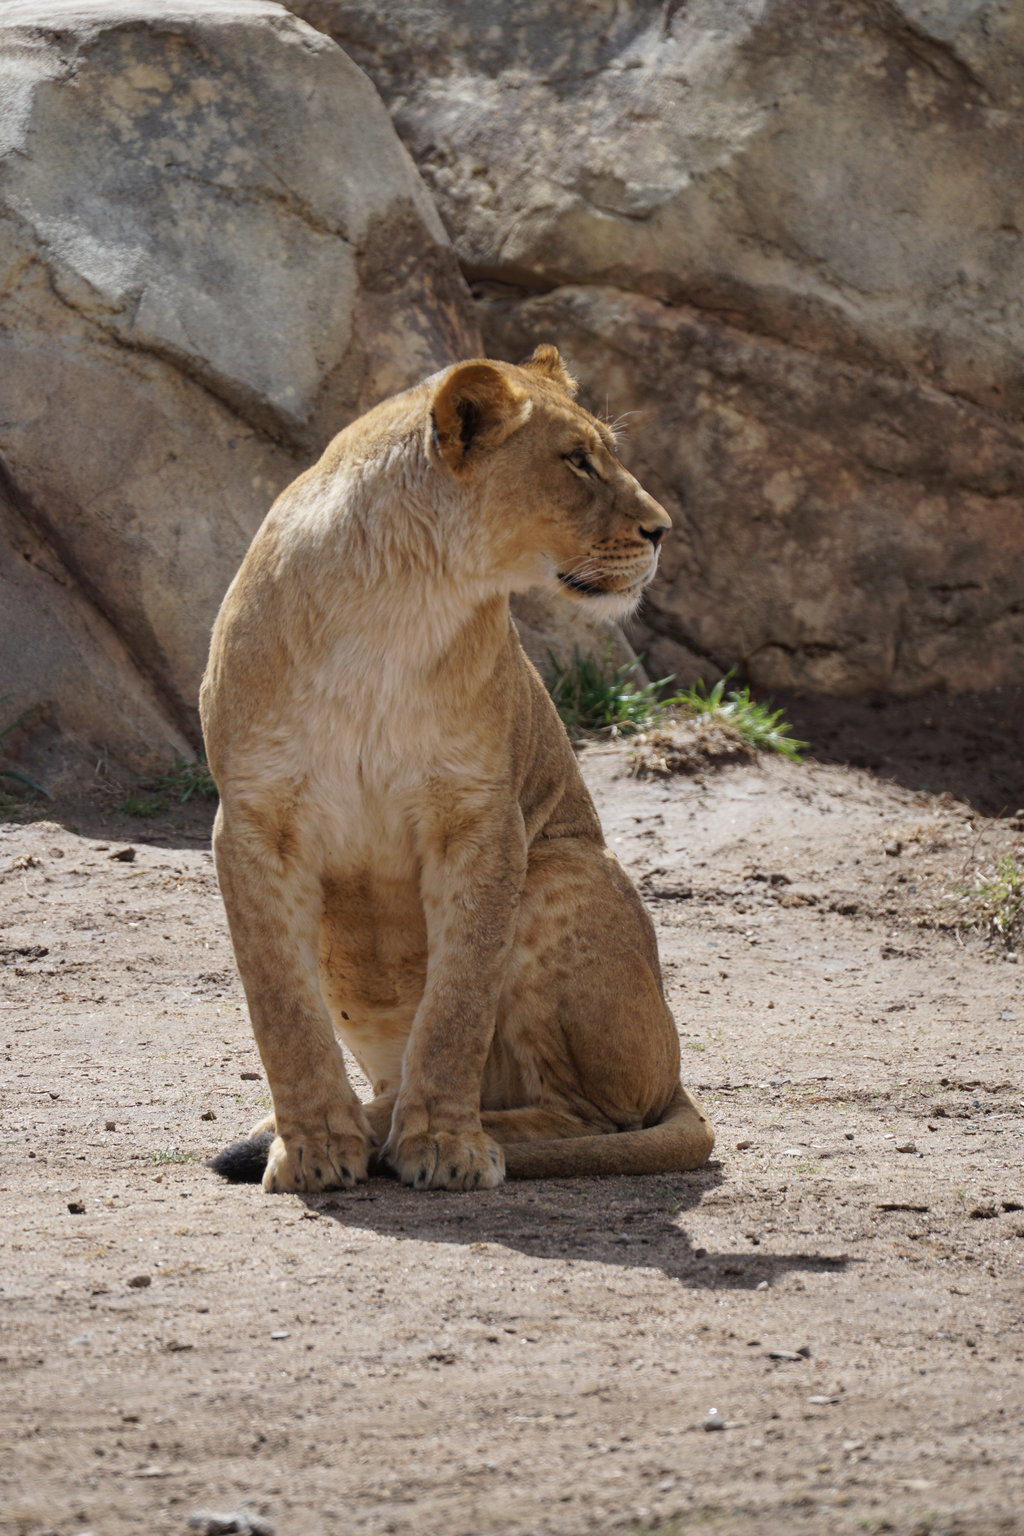 Inquisitive Lioness by shinigamisgem